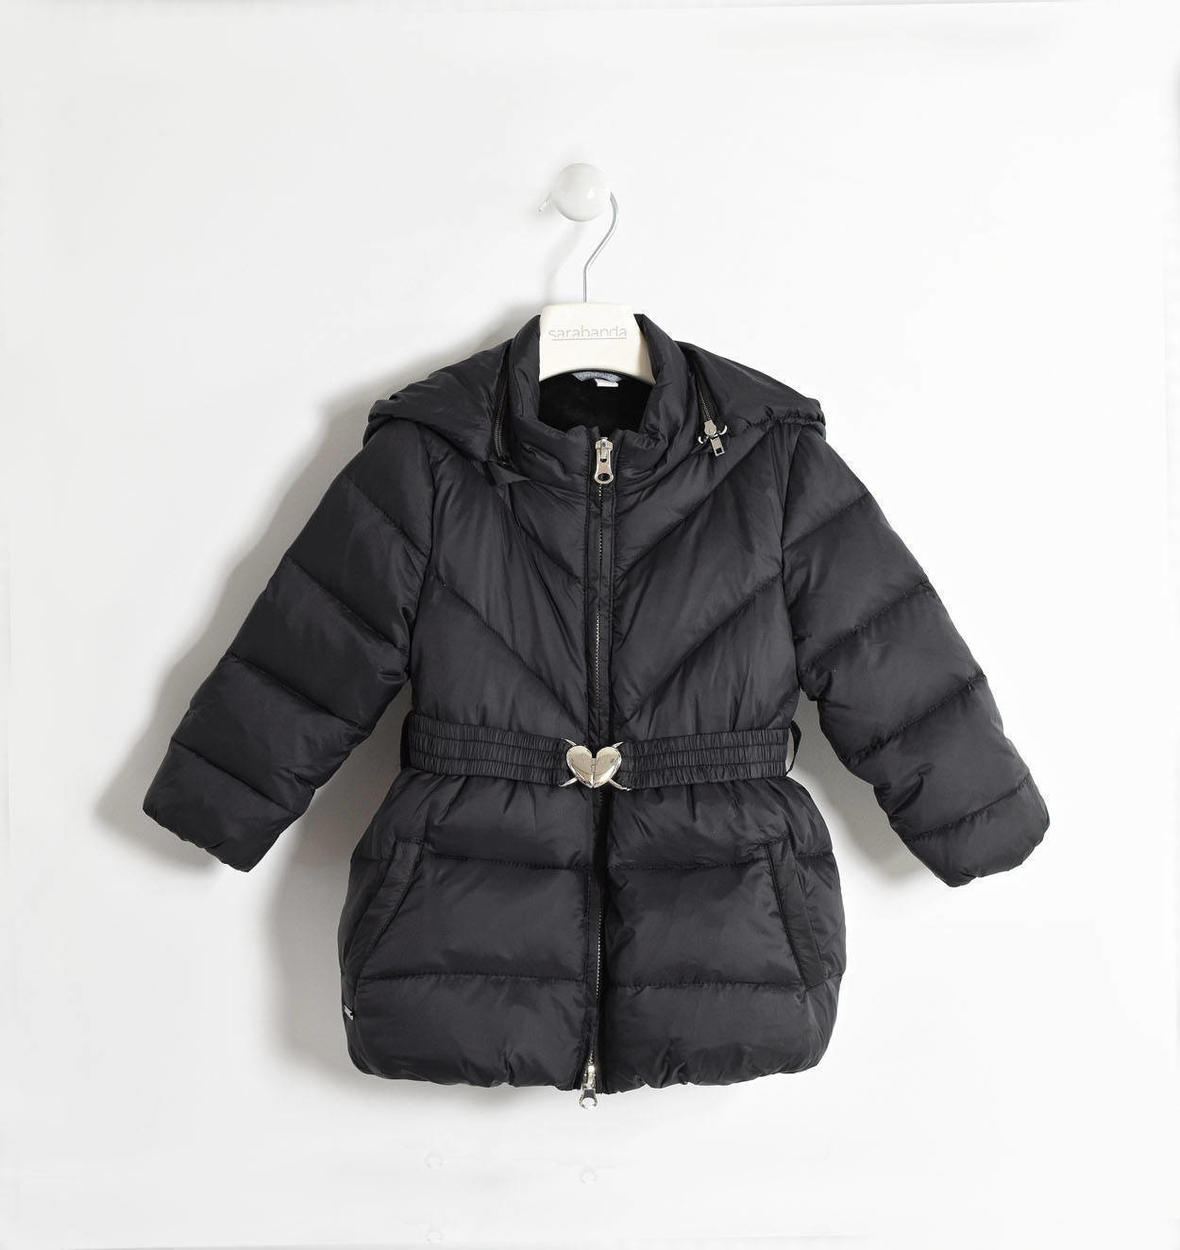 07afe99eb00b Sarabanda real goose down jacket with detachable hood for girls from 6  months to 7 years